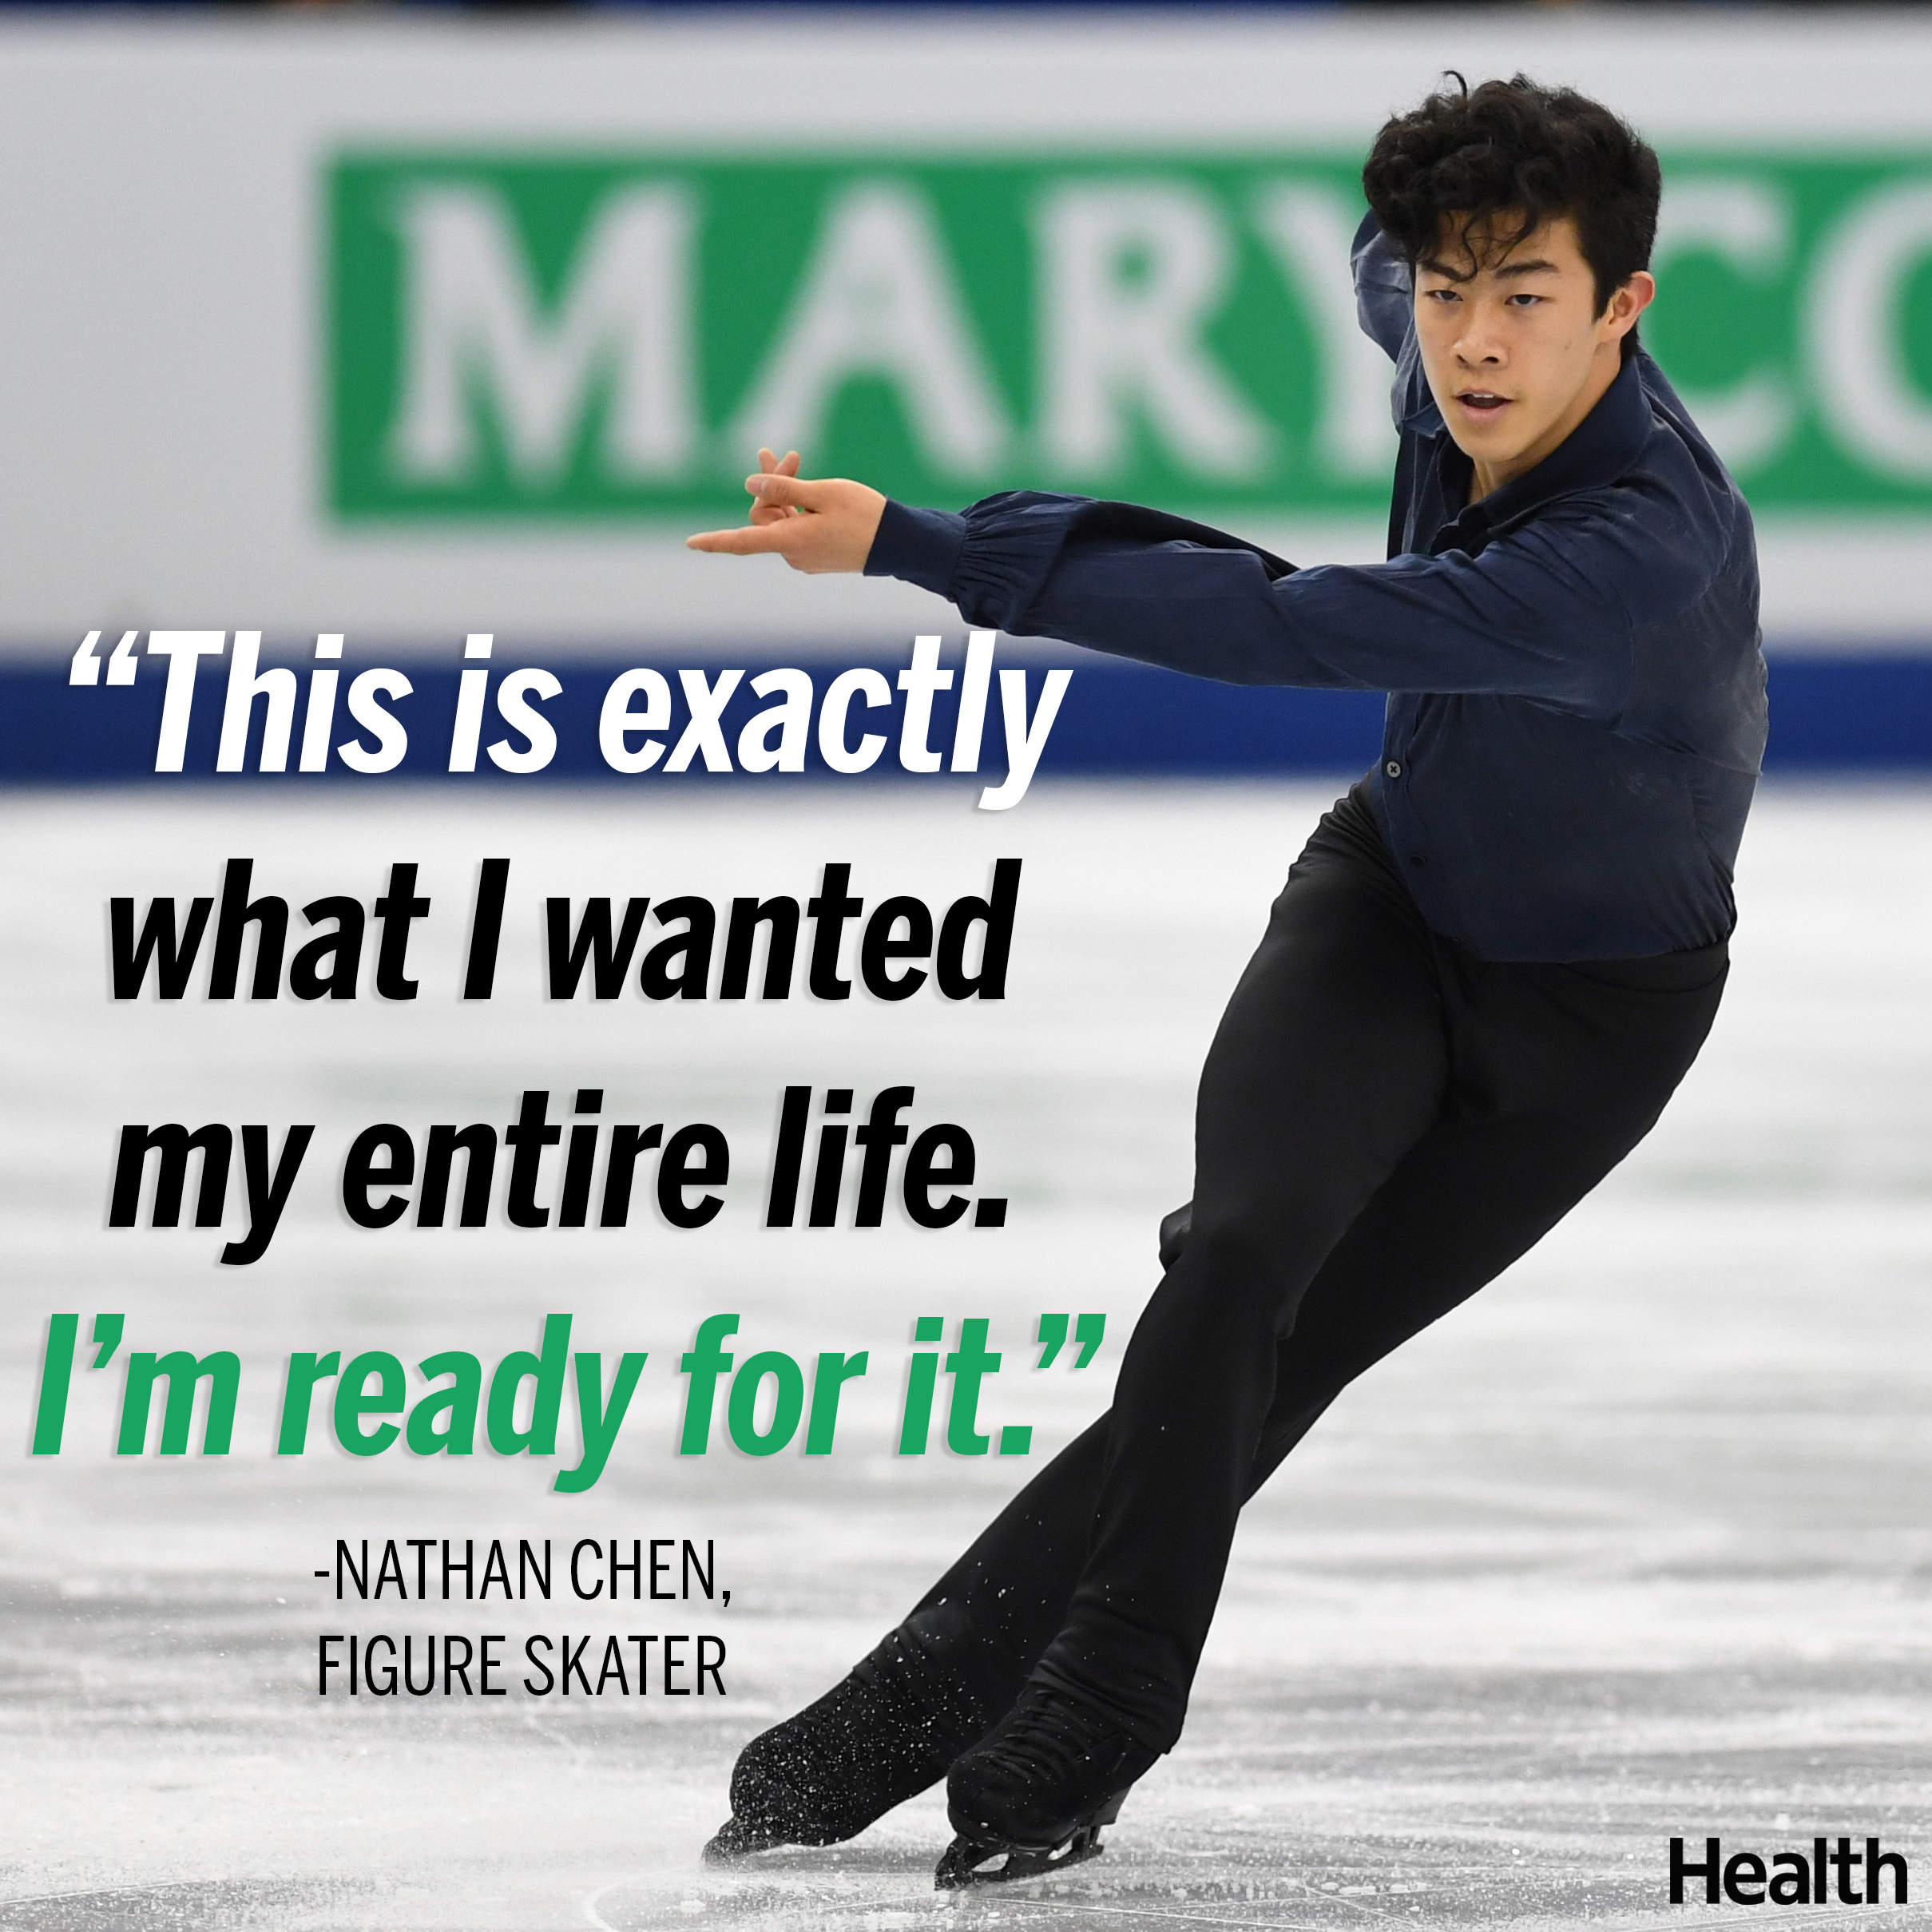 nathan chen is an 18 year old figure skater from salt lake city utah hes had an incredibly successful career so far including being named the 2017 and